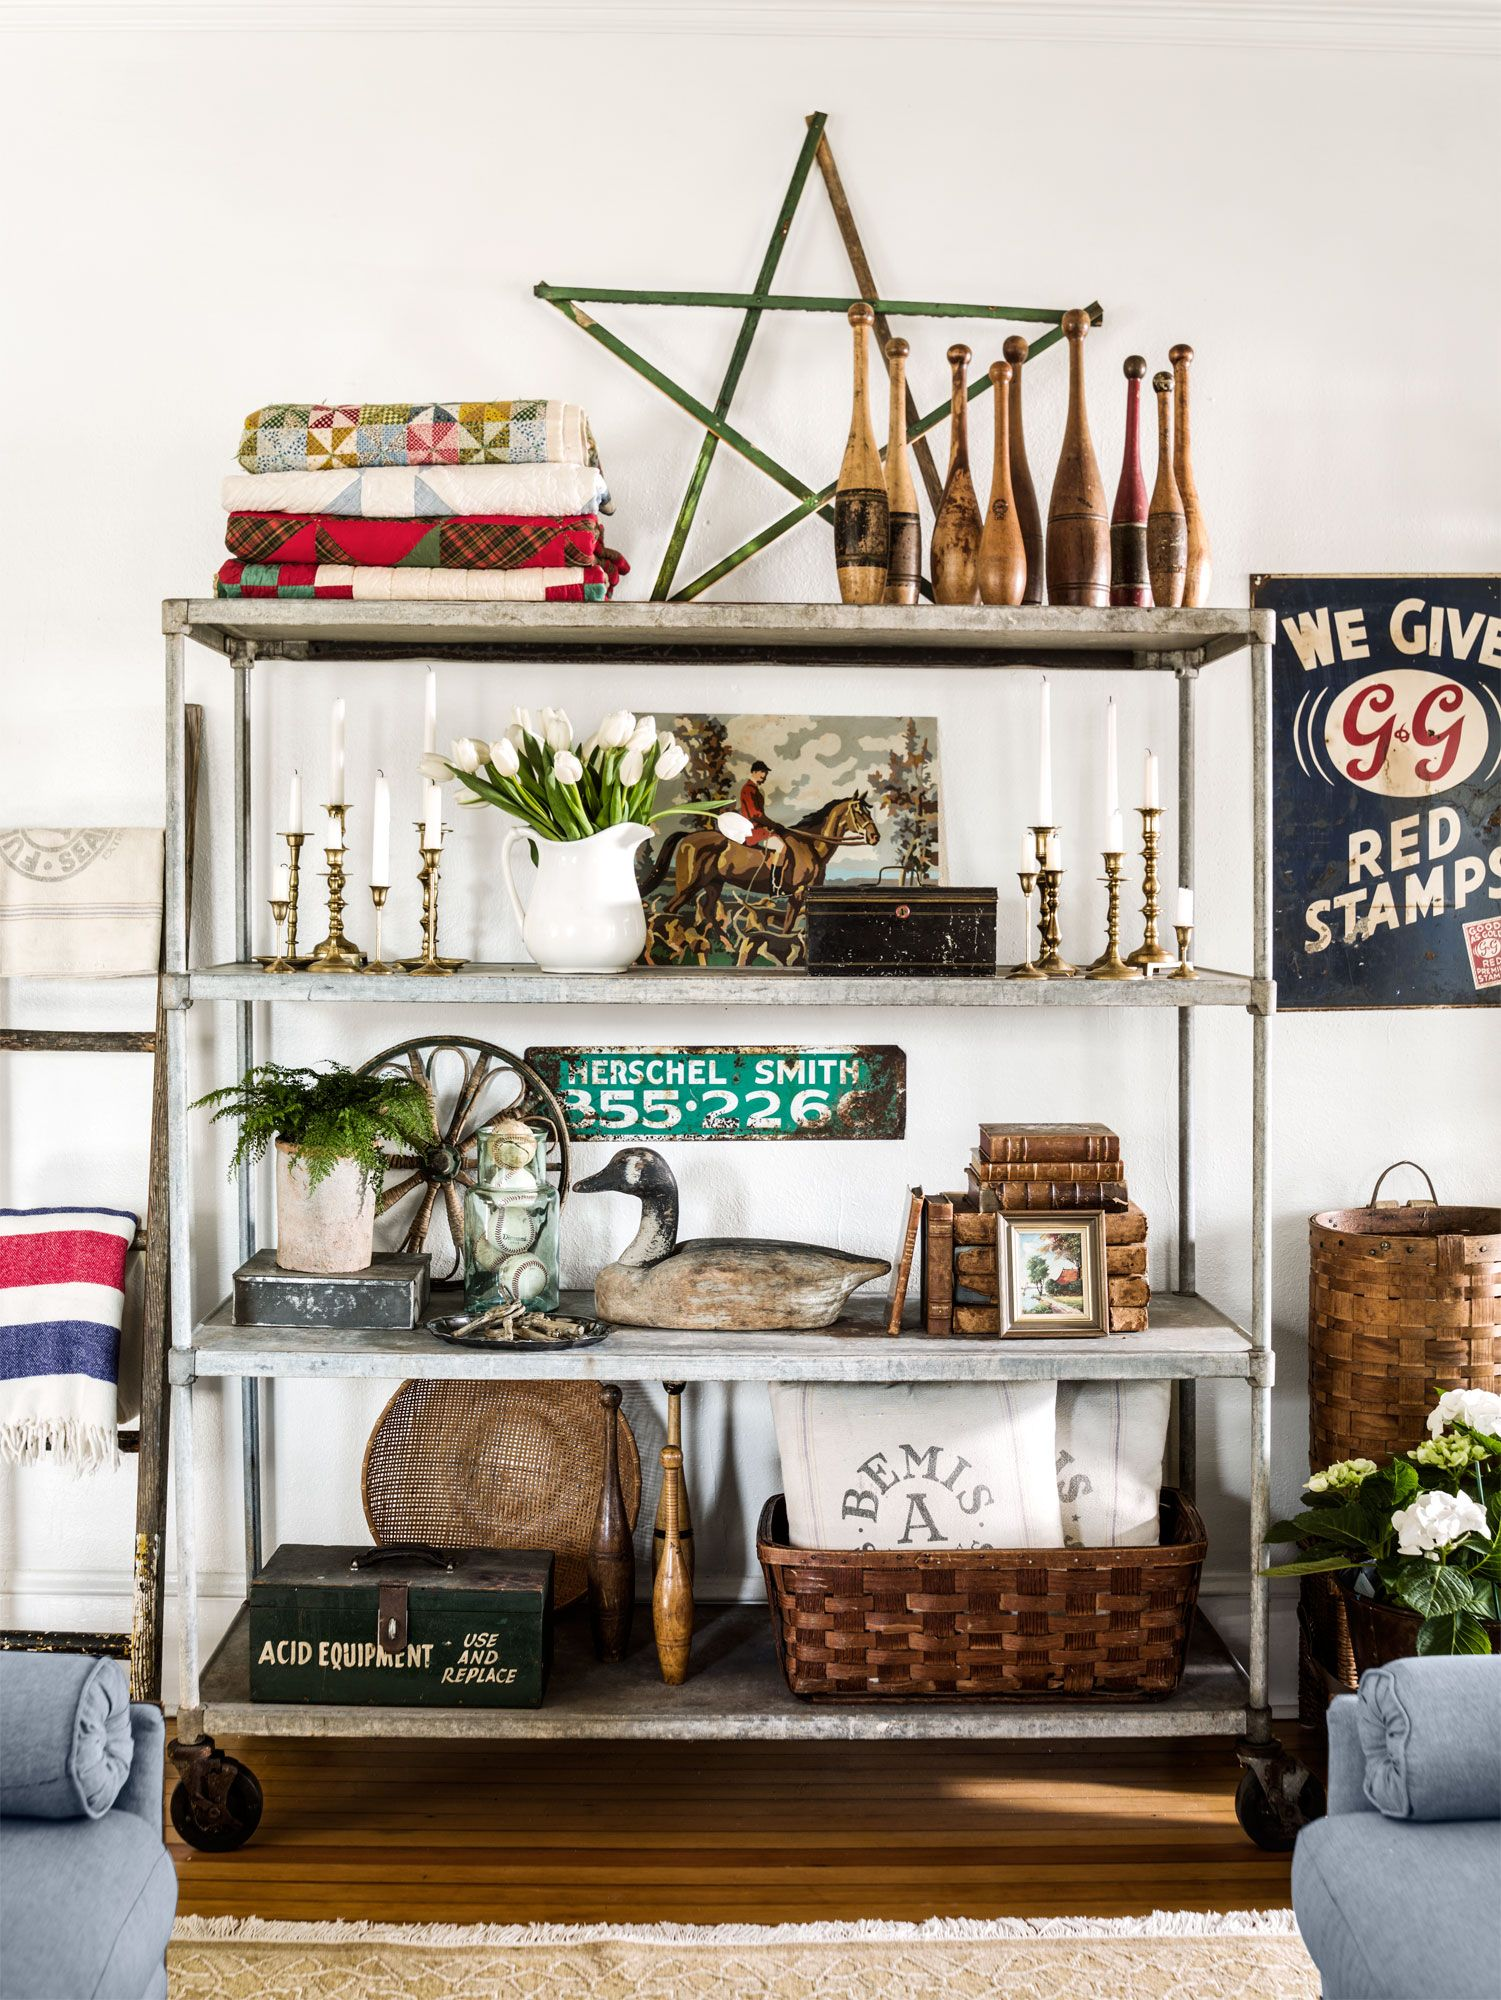 This 1934 farmhouse has the most unique collection of vintage finds in its living room.